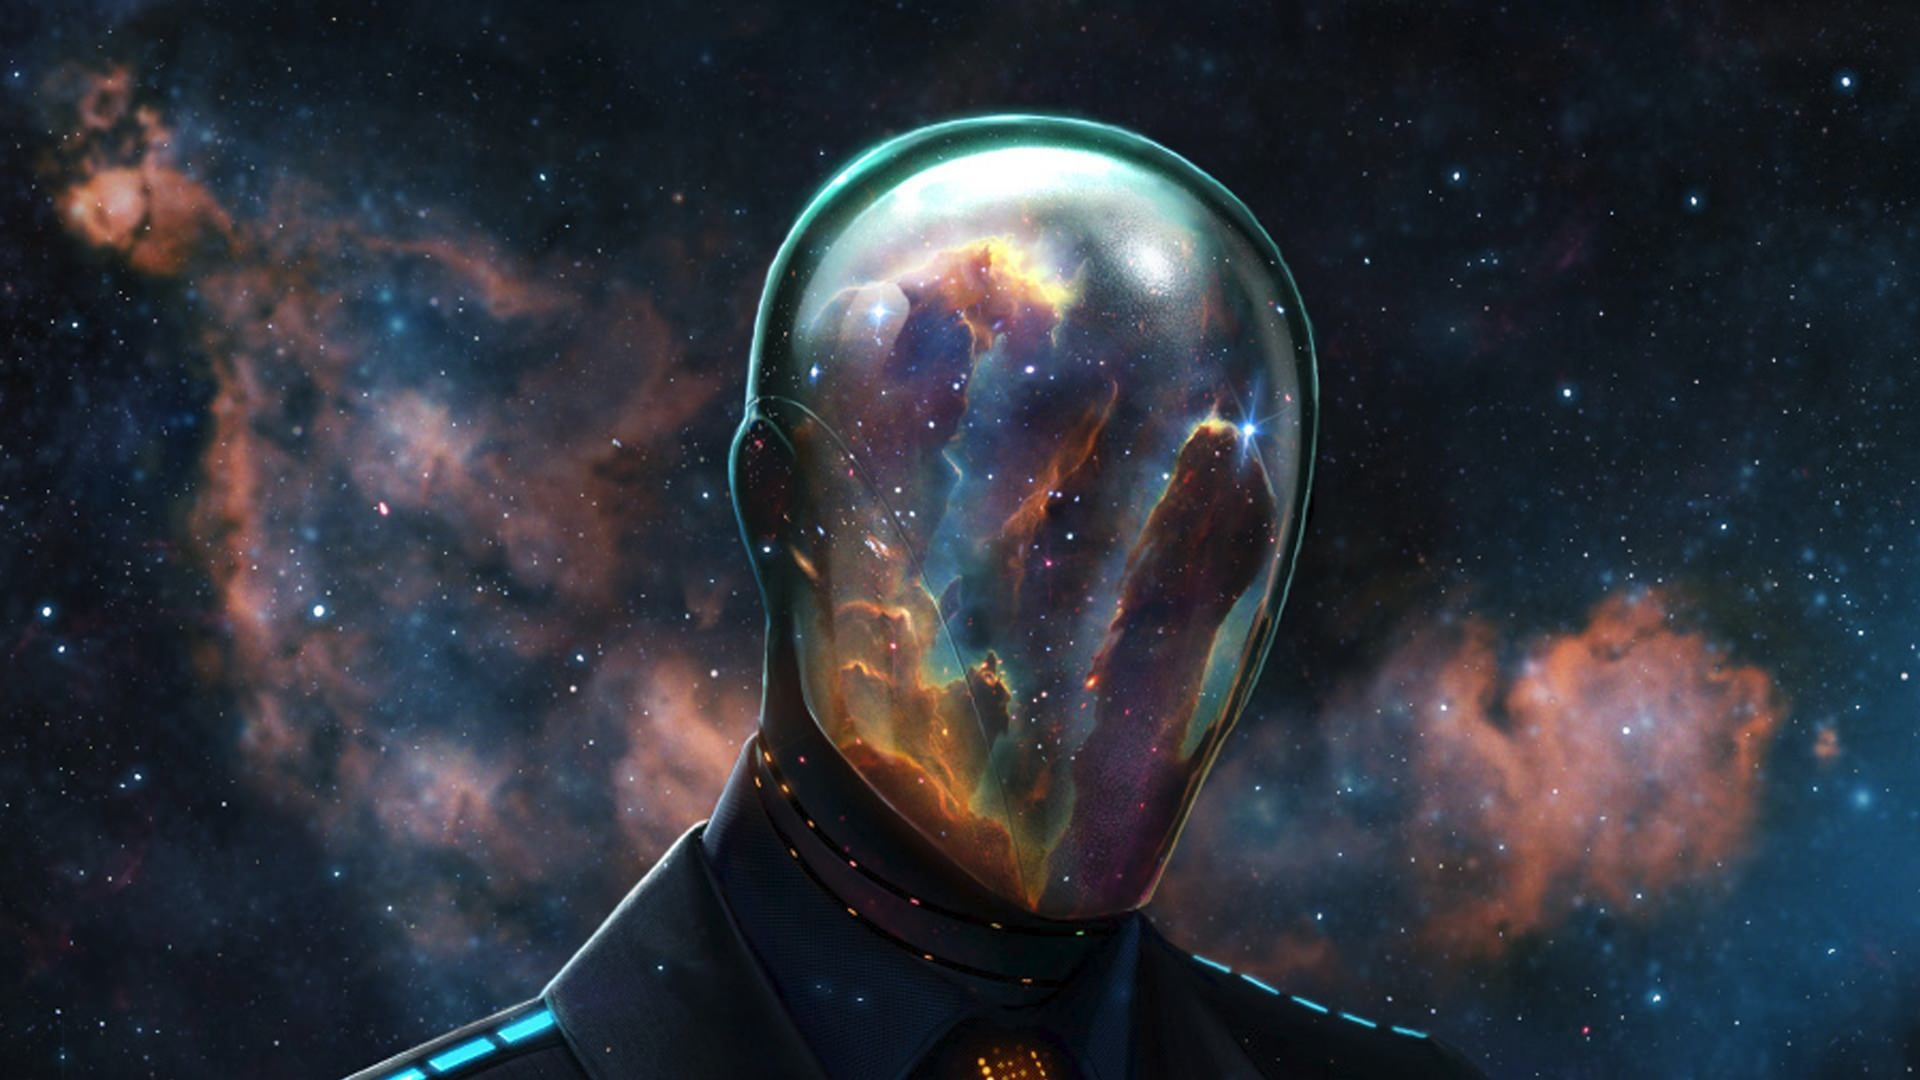 Hd wallpaper universe - Surreal Mr Universe Wallpaper Click The Link To Download The Full Sized Image Http